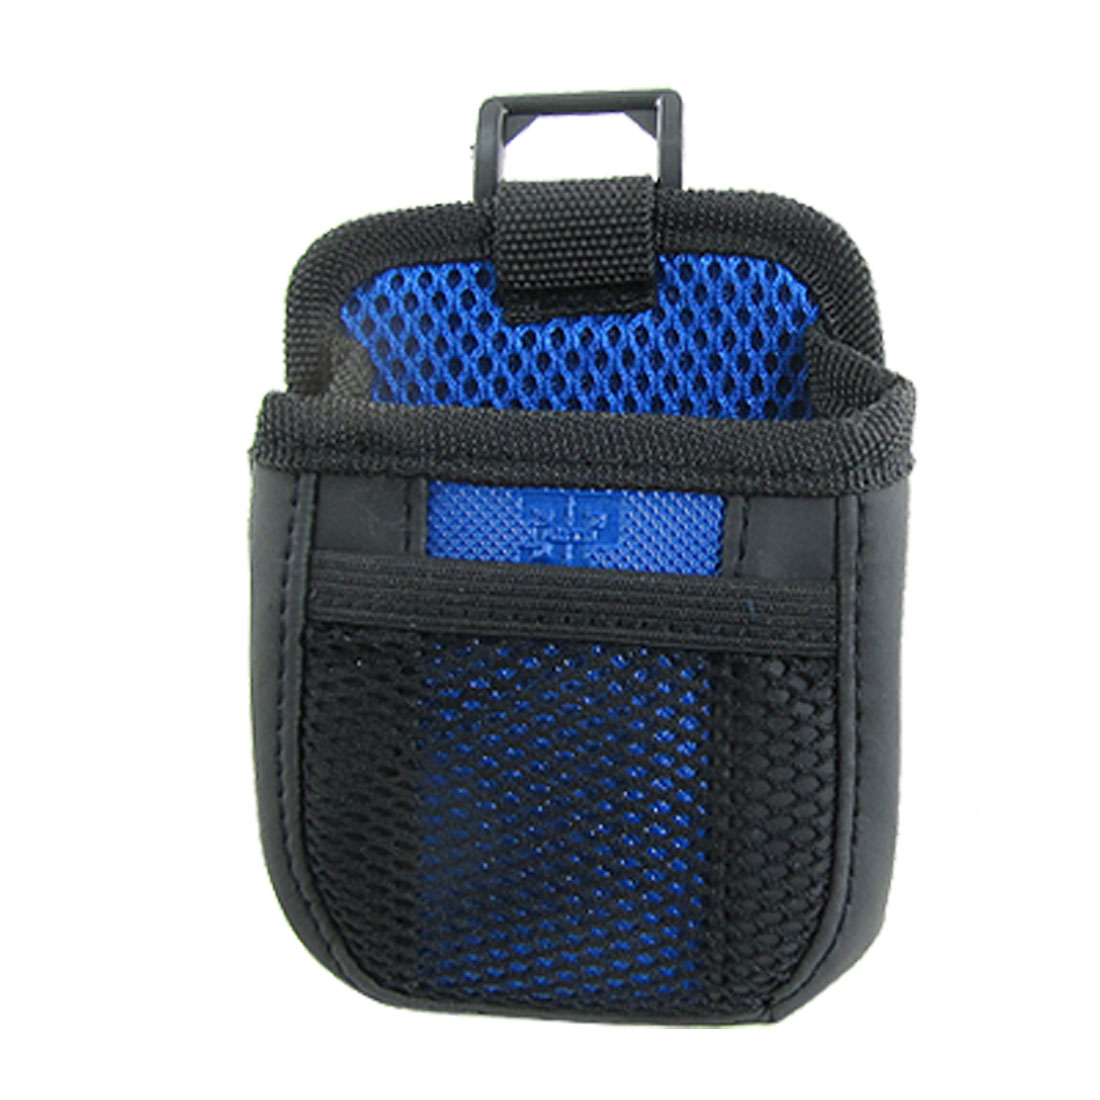 Car Auto Mobile Phone Black Blue Mesh Holder Pouch Bag